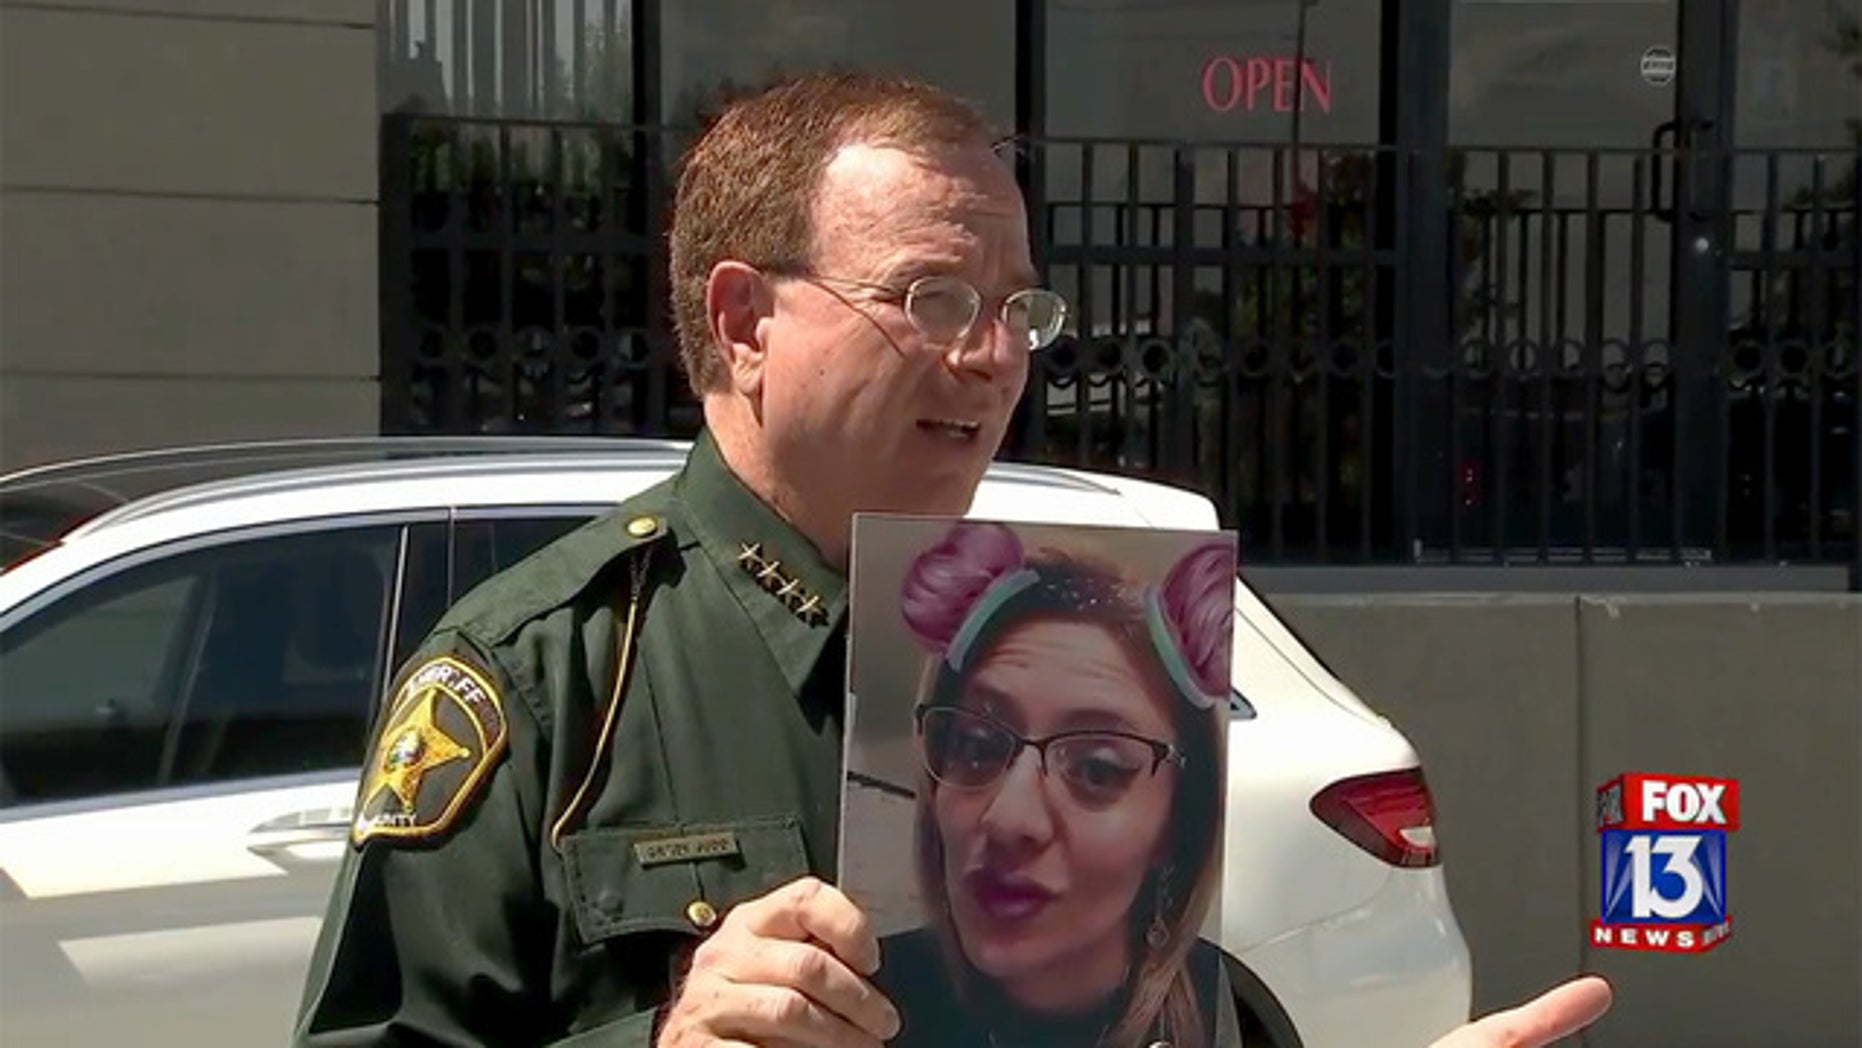 Polk County Sheriff Grady Judd, seen holding a photo of suspect Jesse Lopez, said she was operating without a medical license.